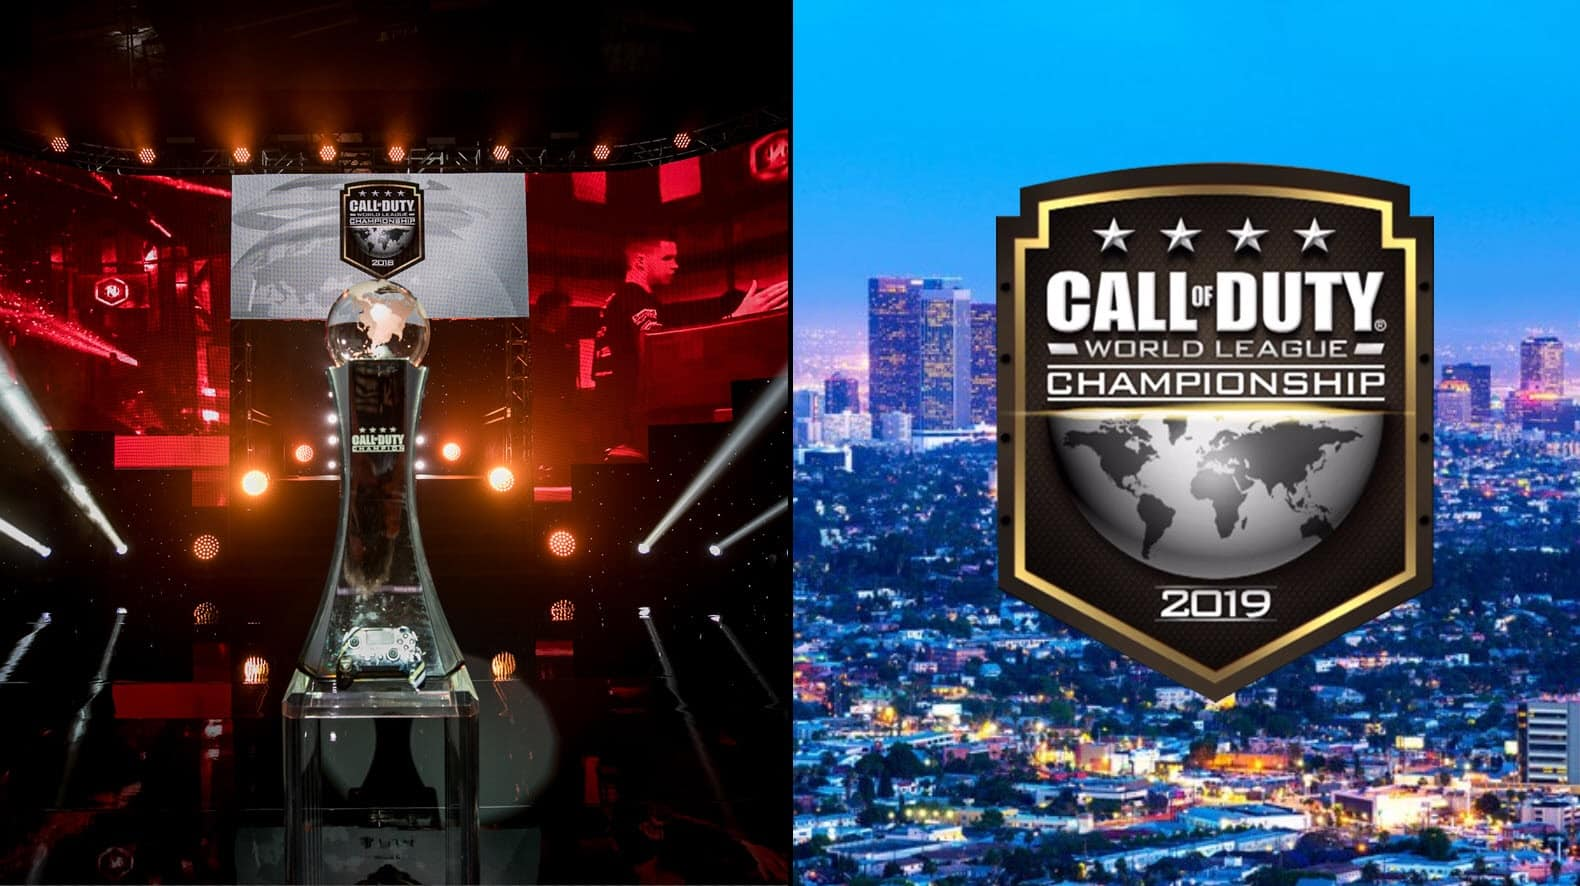 Where to Watch The CWL Championship - Call of Duty World League